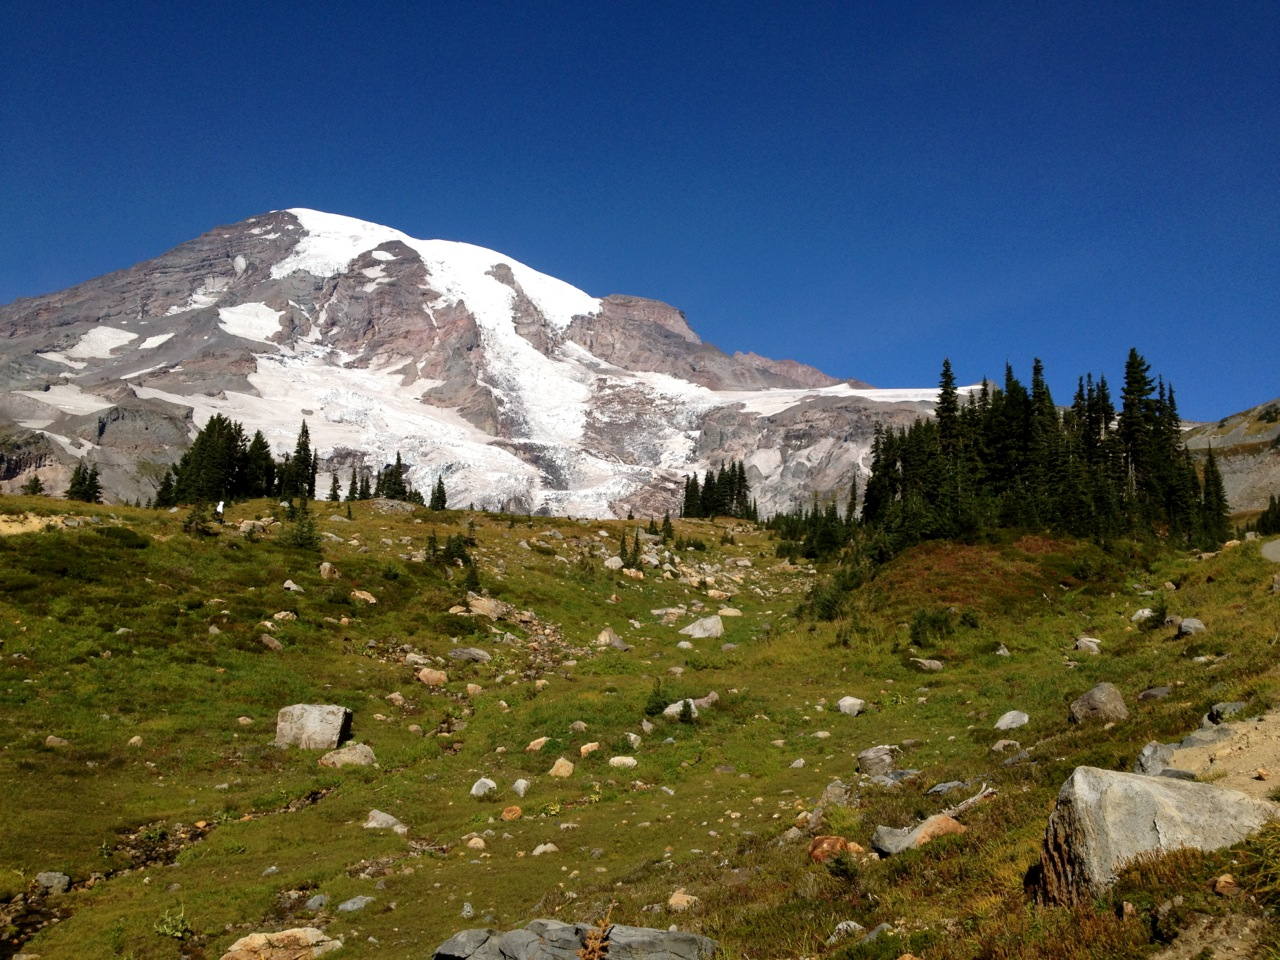 Skyline Trail – Mount Rainier National Park, Washington